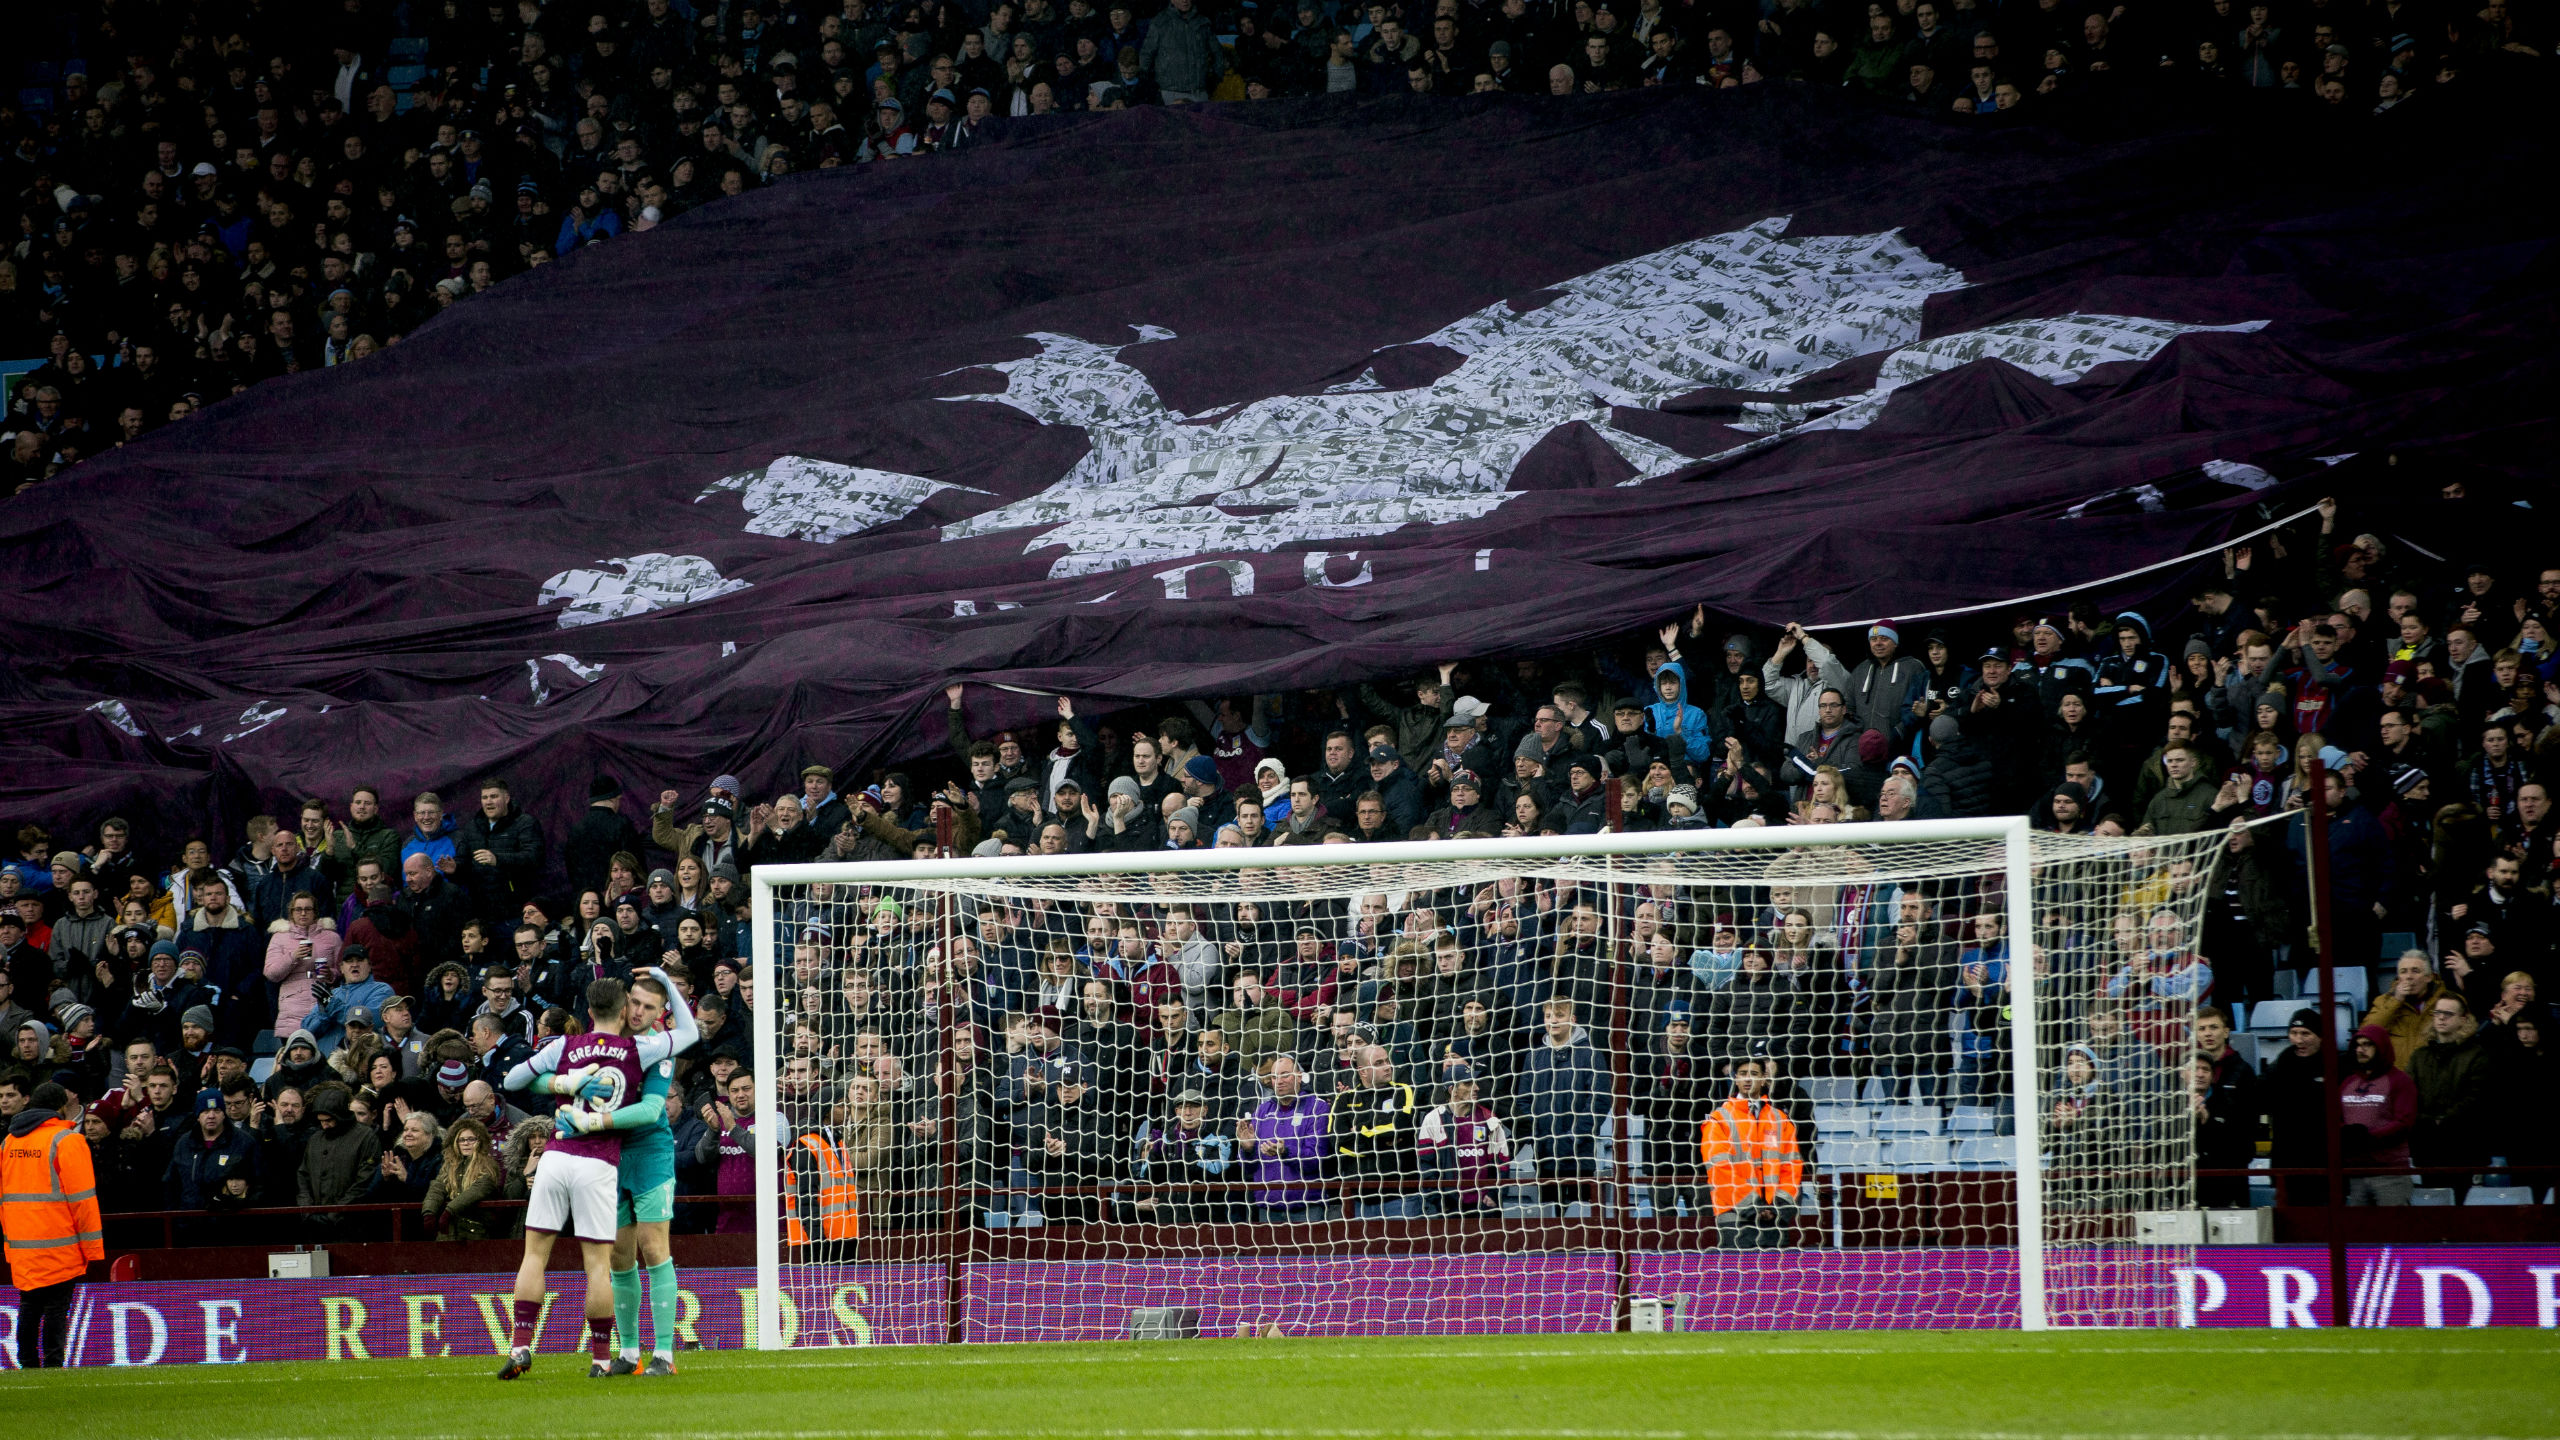 Where In The World Other Holte Ends Avfc